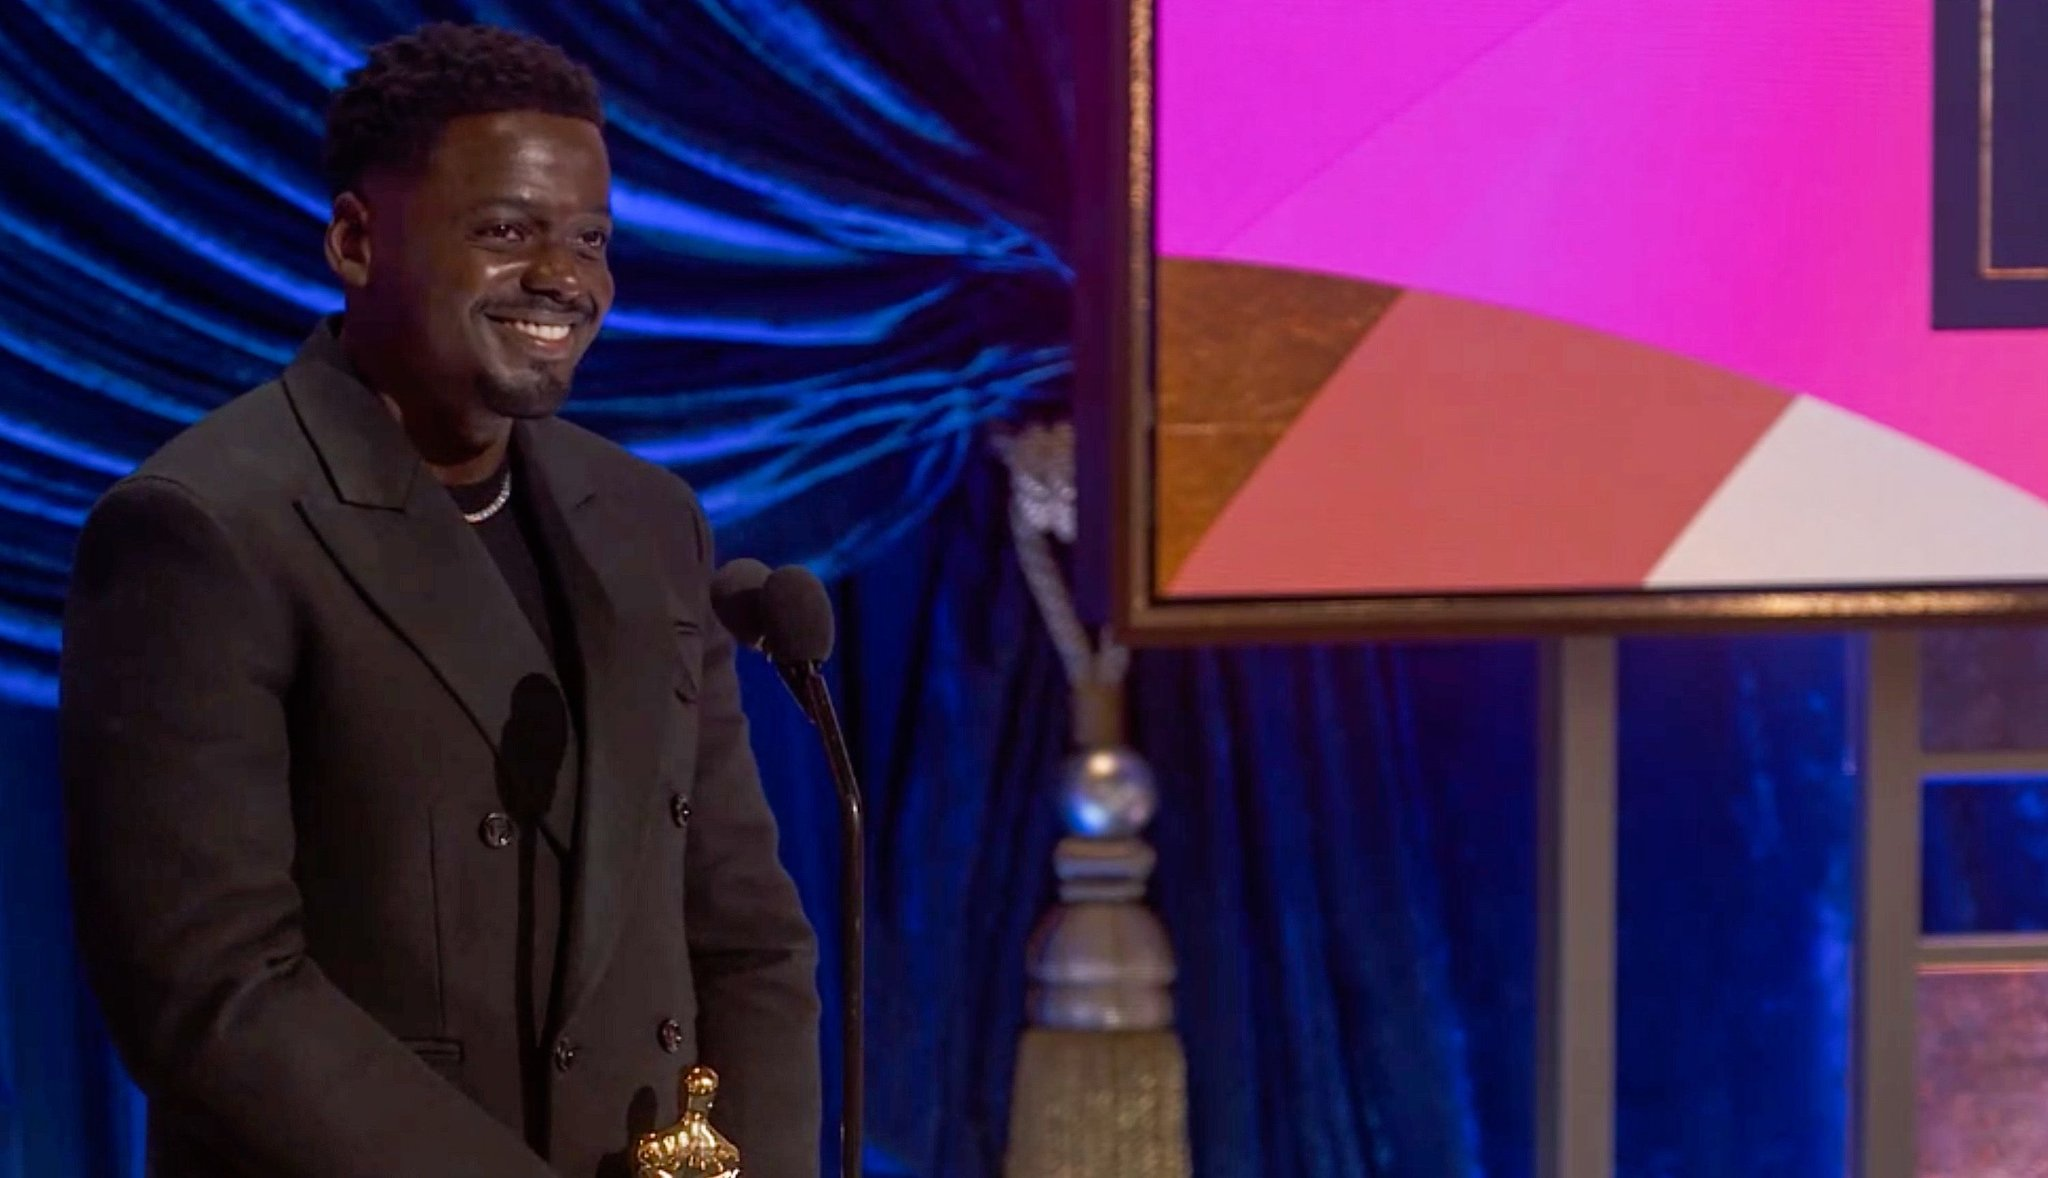 The Oscars Gambled on a Risky Ending, and It Absolutely Backfired - cover